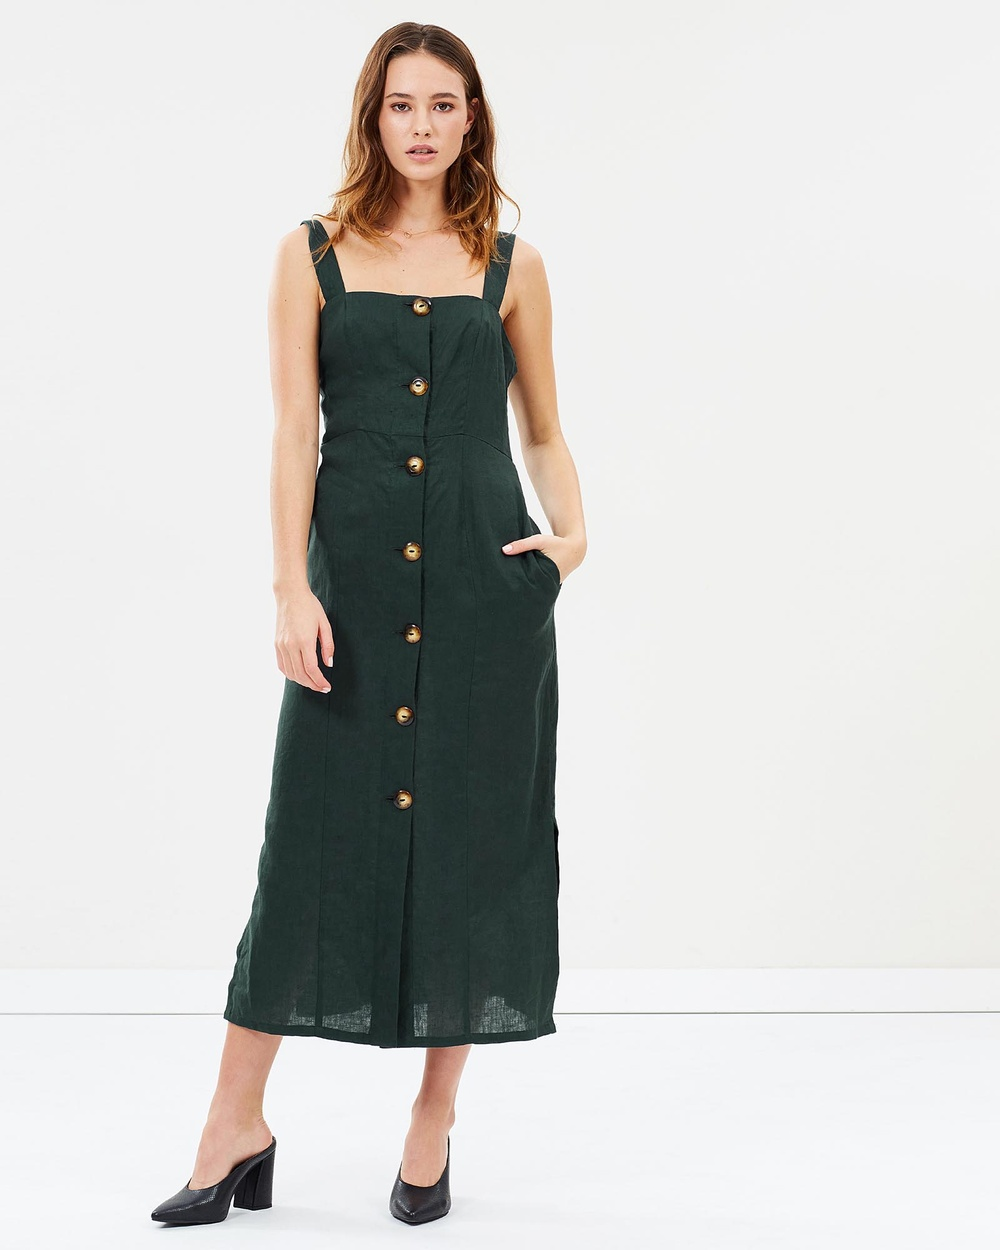 Jillian Boustred Chloe Dress Dresses Forest Green Chloe Dress